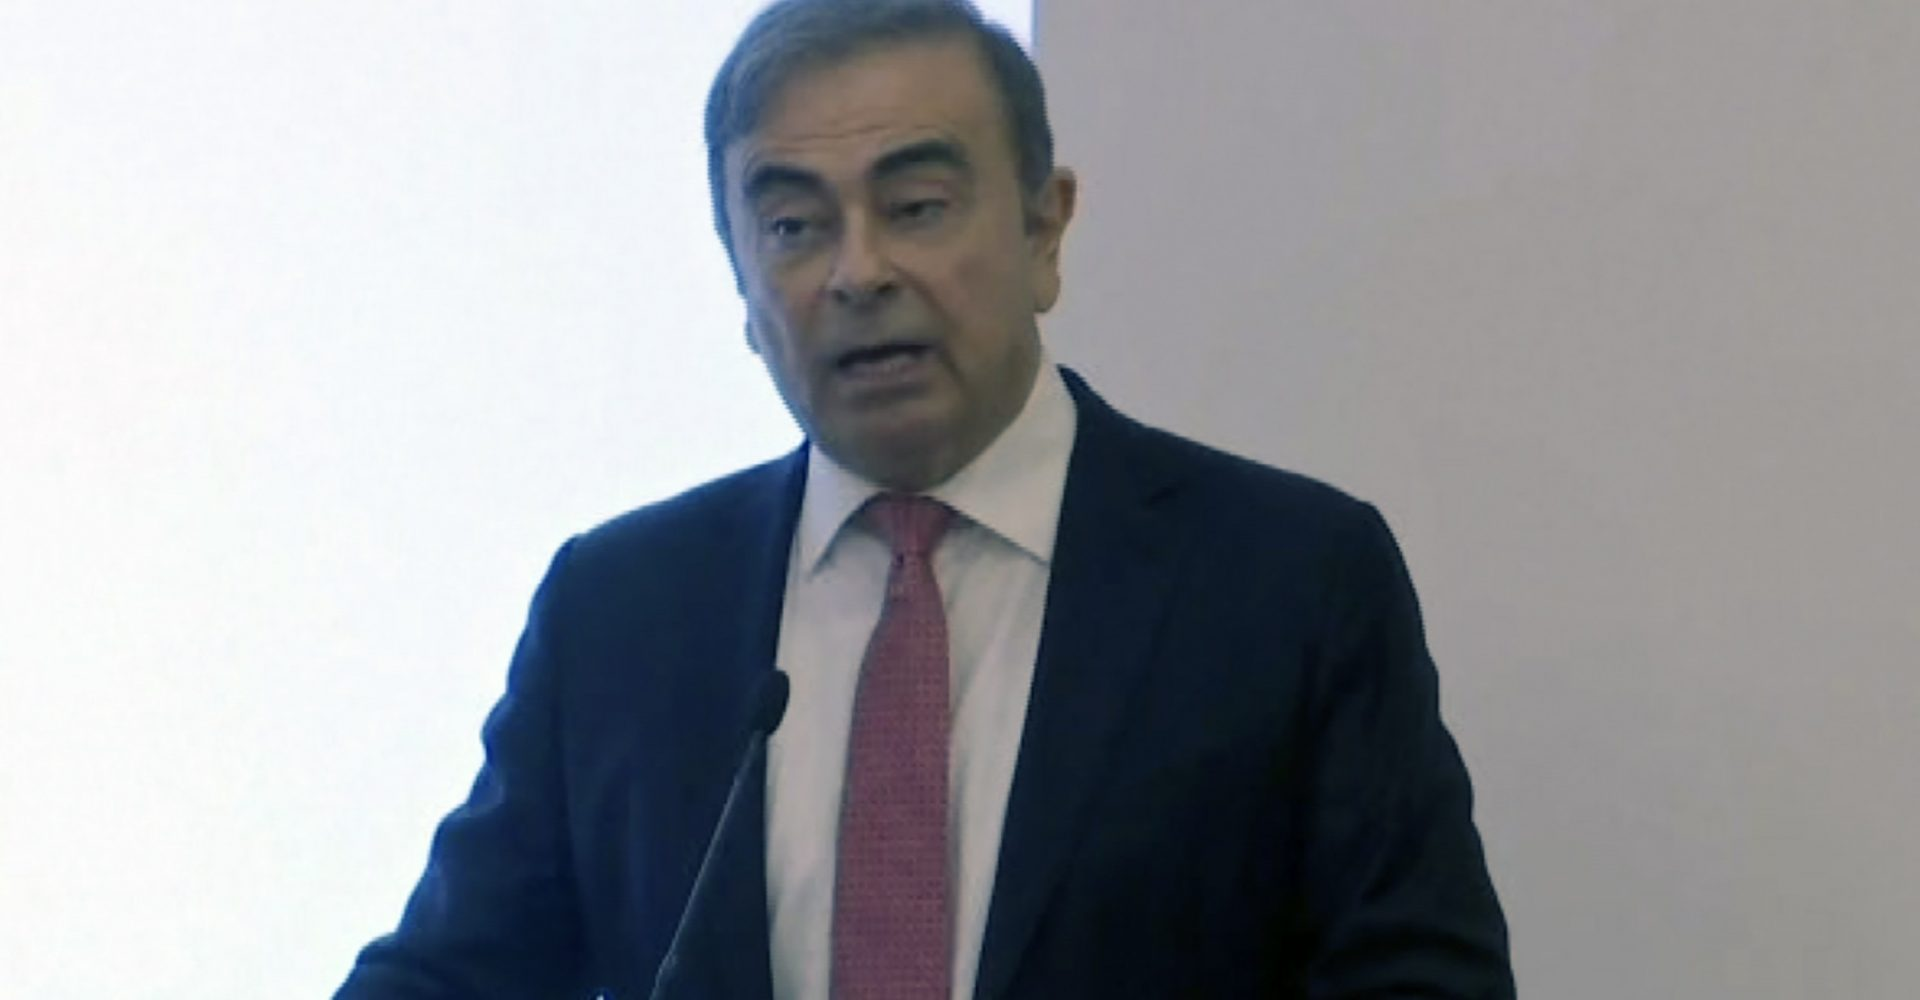 Carlos Ghosn: Detention in Japan 'travesty' against human rights